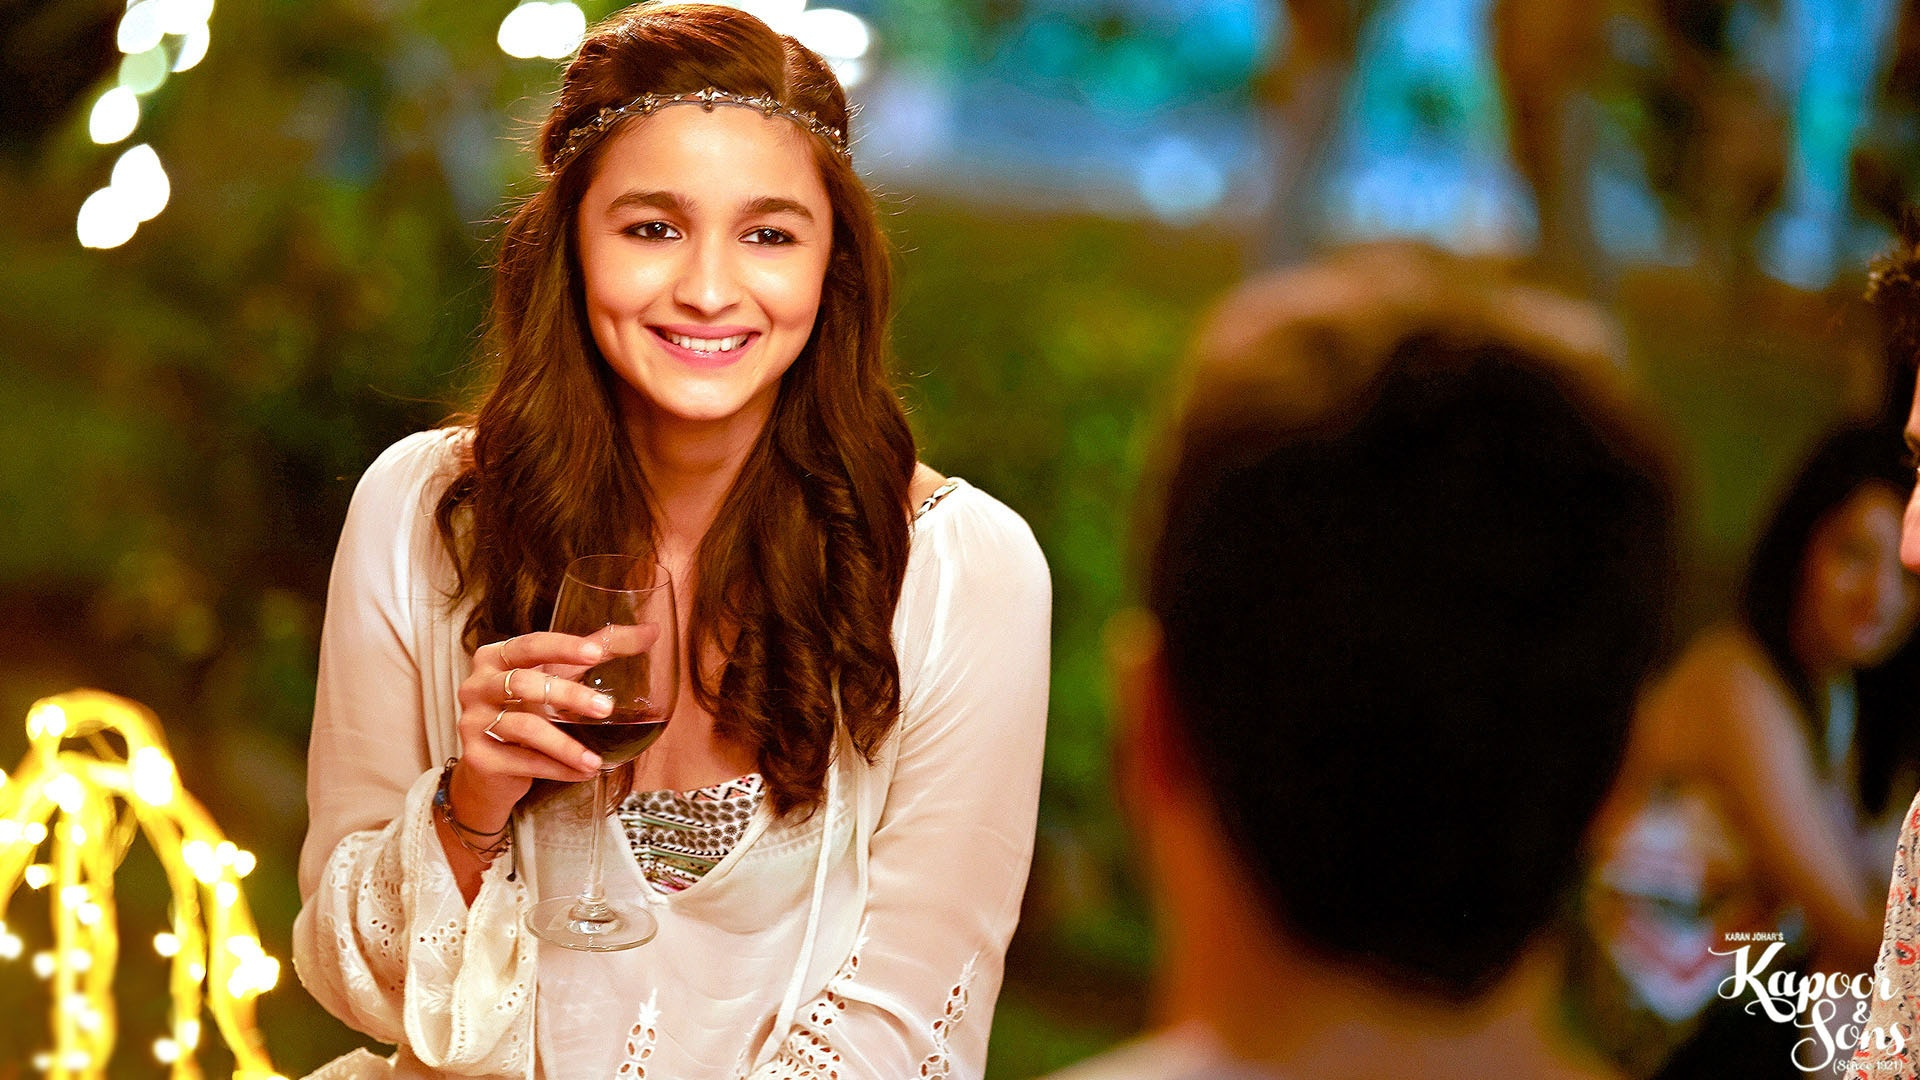 Alia Bhatt In Kapoor And Sons Movie Wallpapers 1920x1080 596615